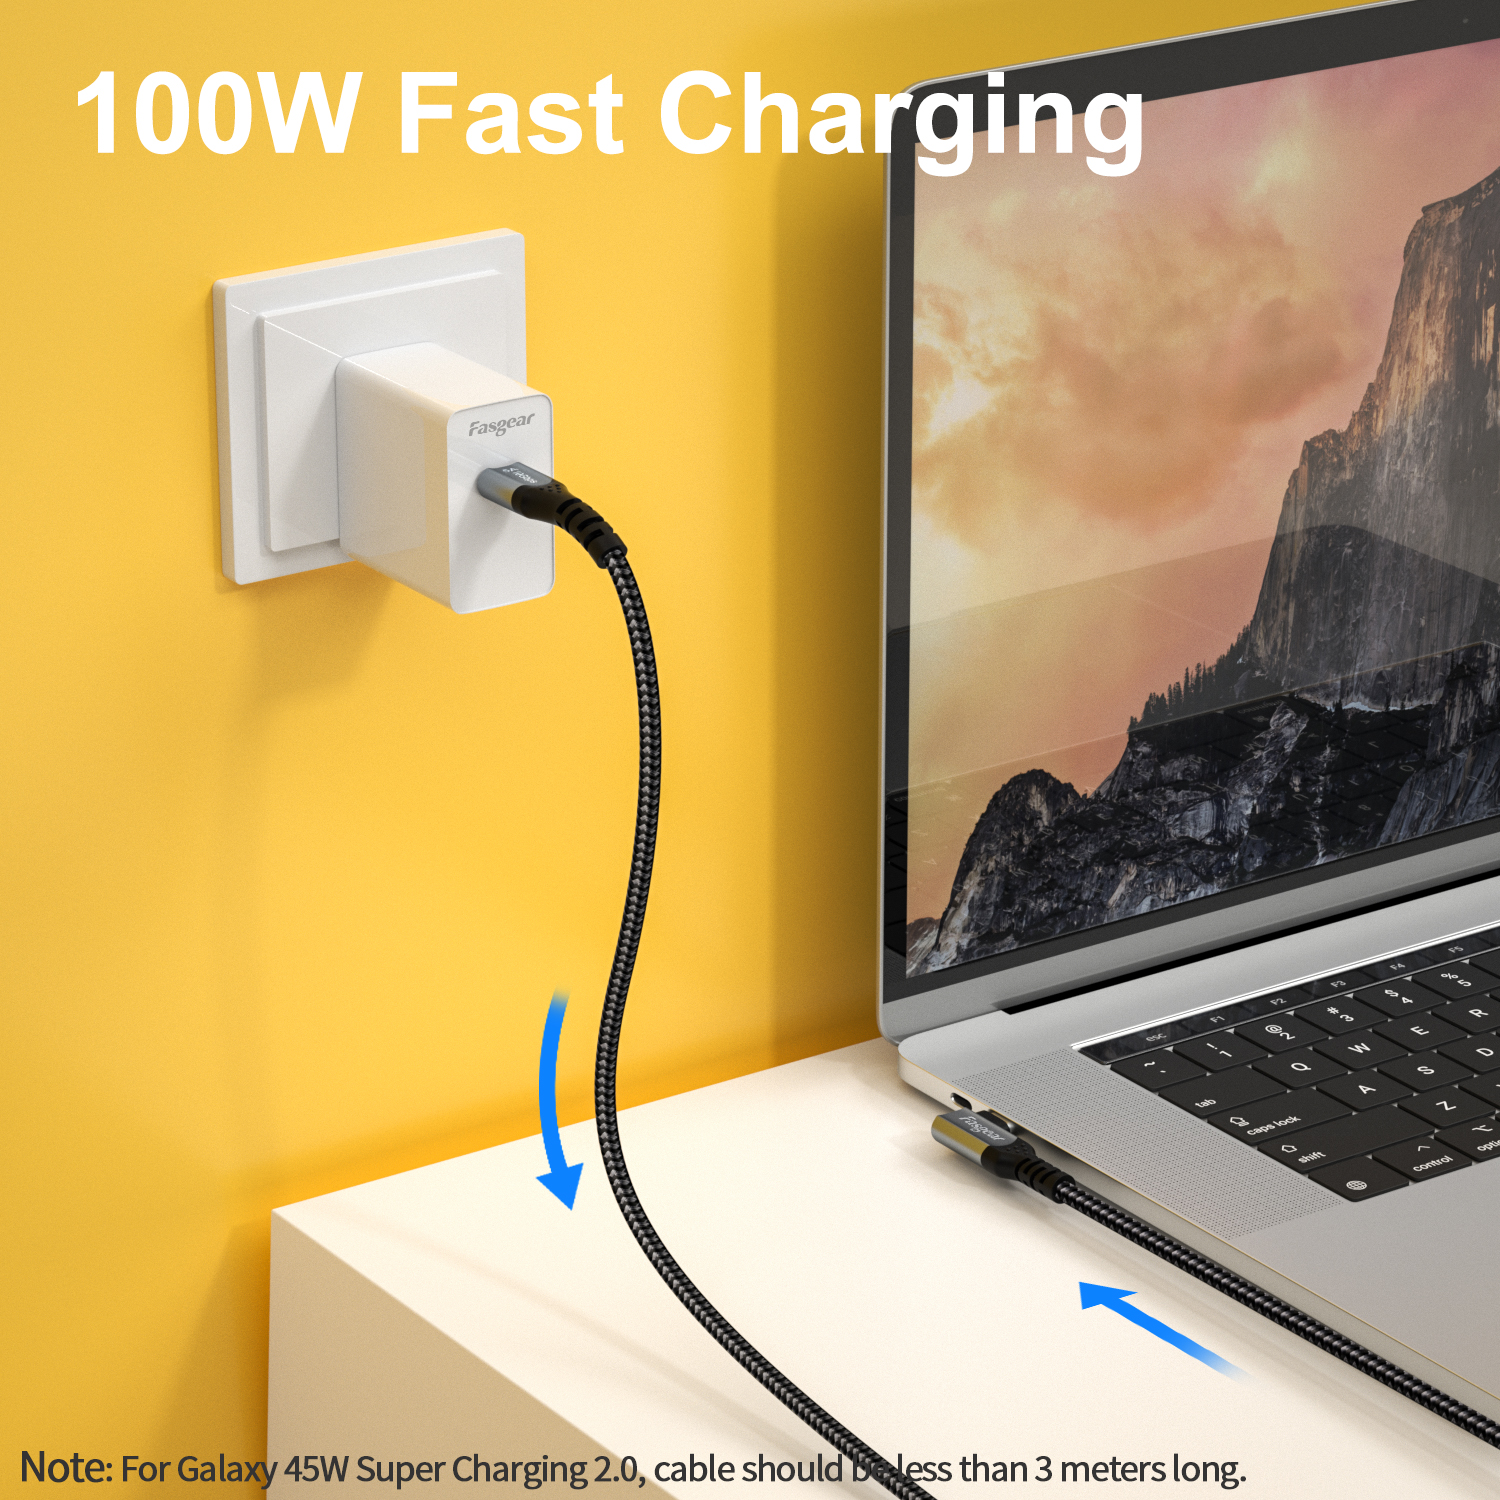 BoxWave Jet Black - USB-C to USB-C Type C Braided 3ft Charge and Sync Cable for Sager NP9156-G2 Sager NP9156-G2 Cable 3ft 100W DirectSync PD Cable